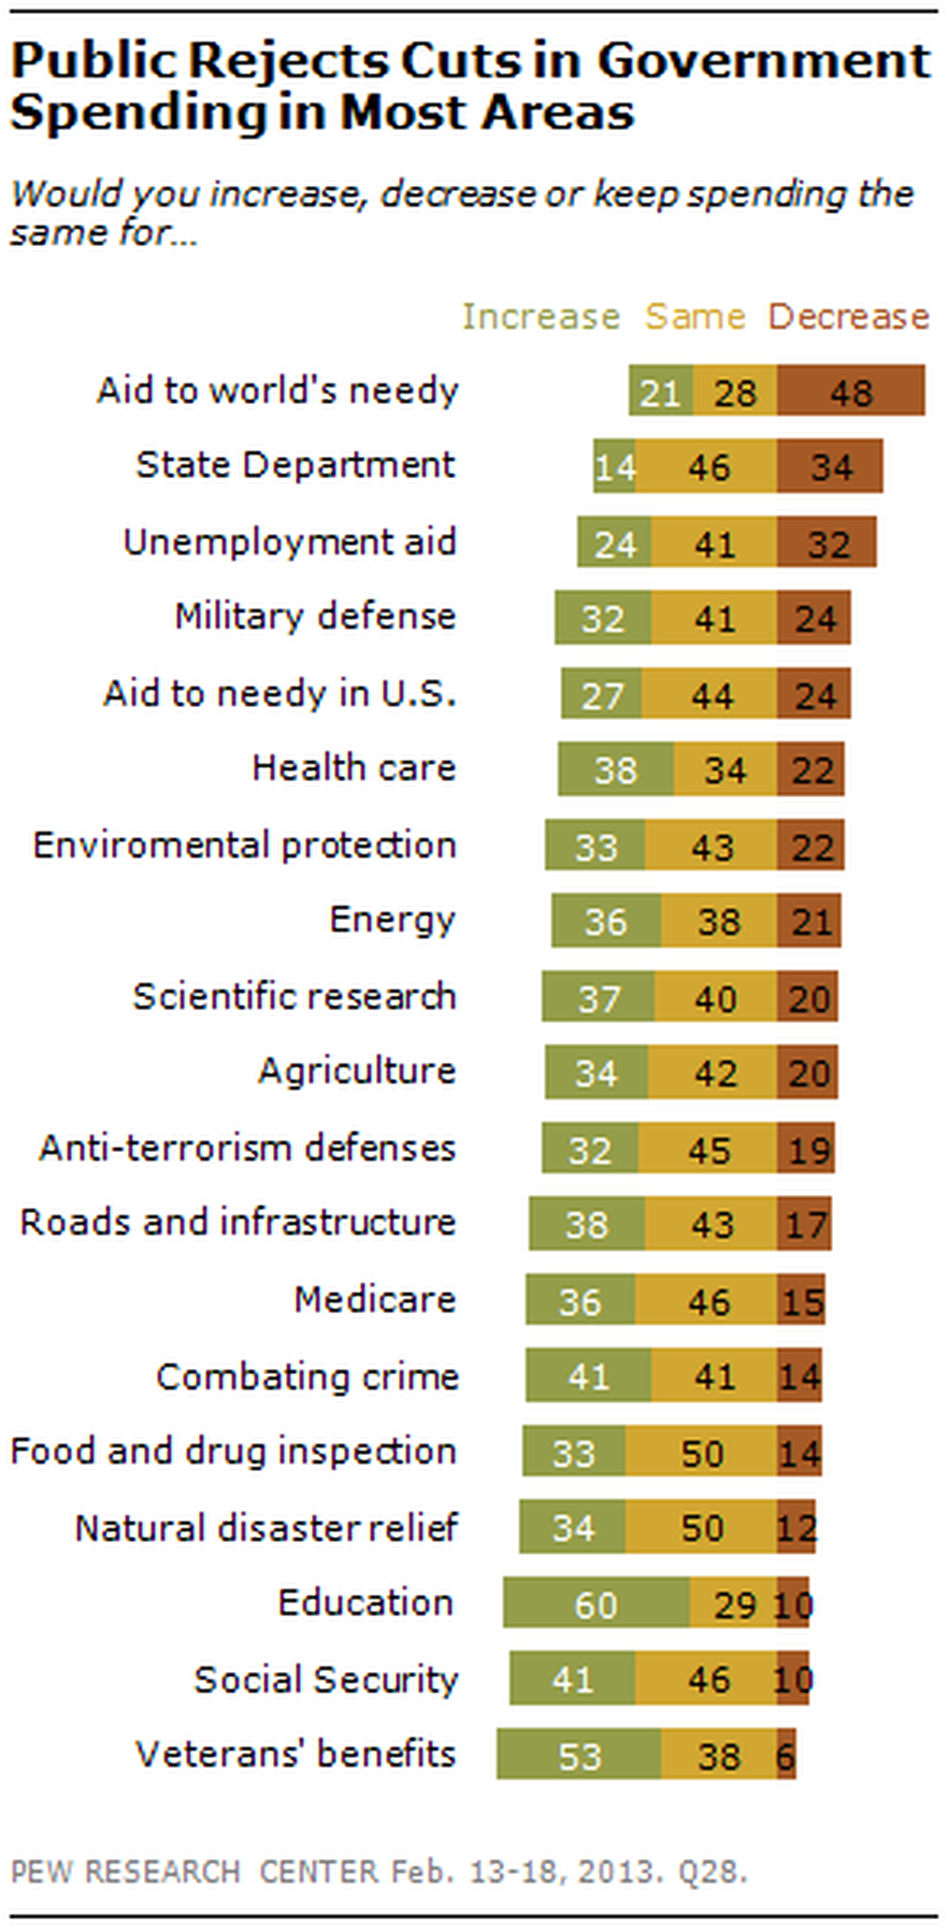 (Pew Research Center for the People & the Press)